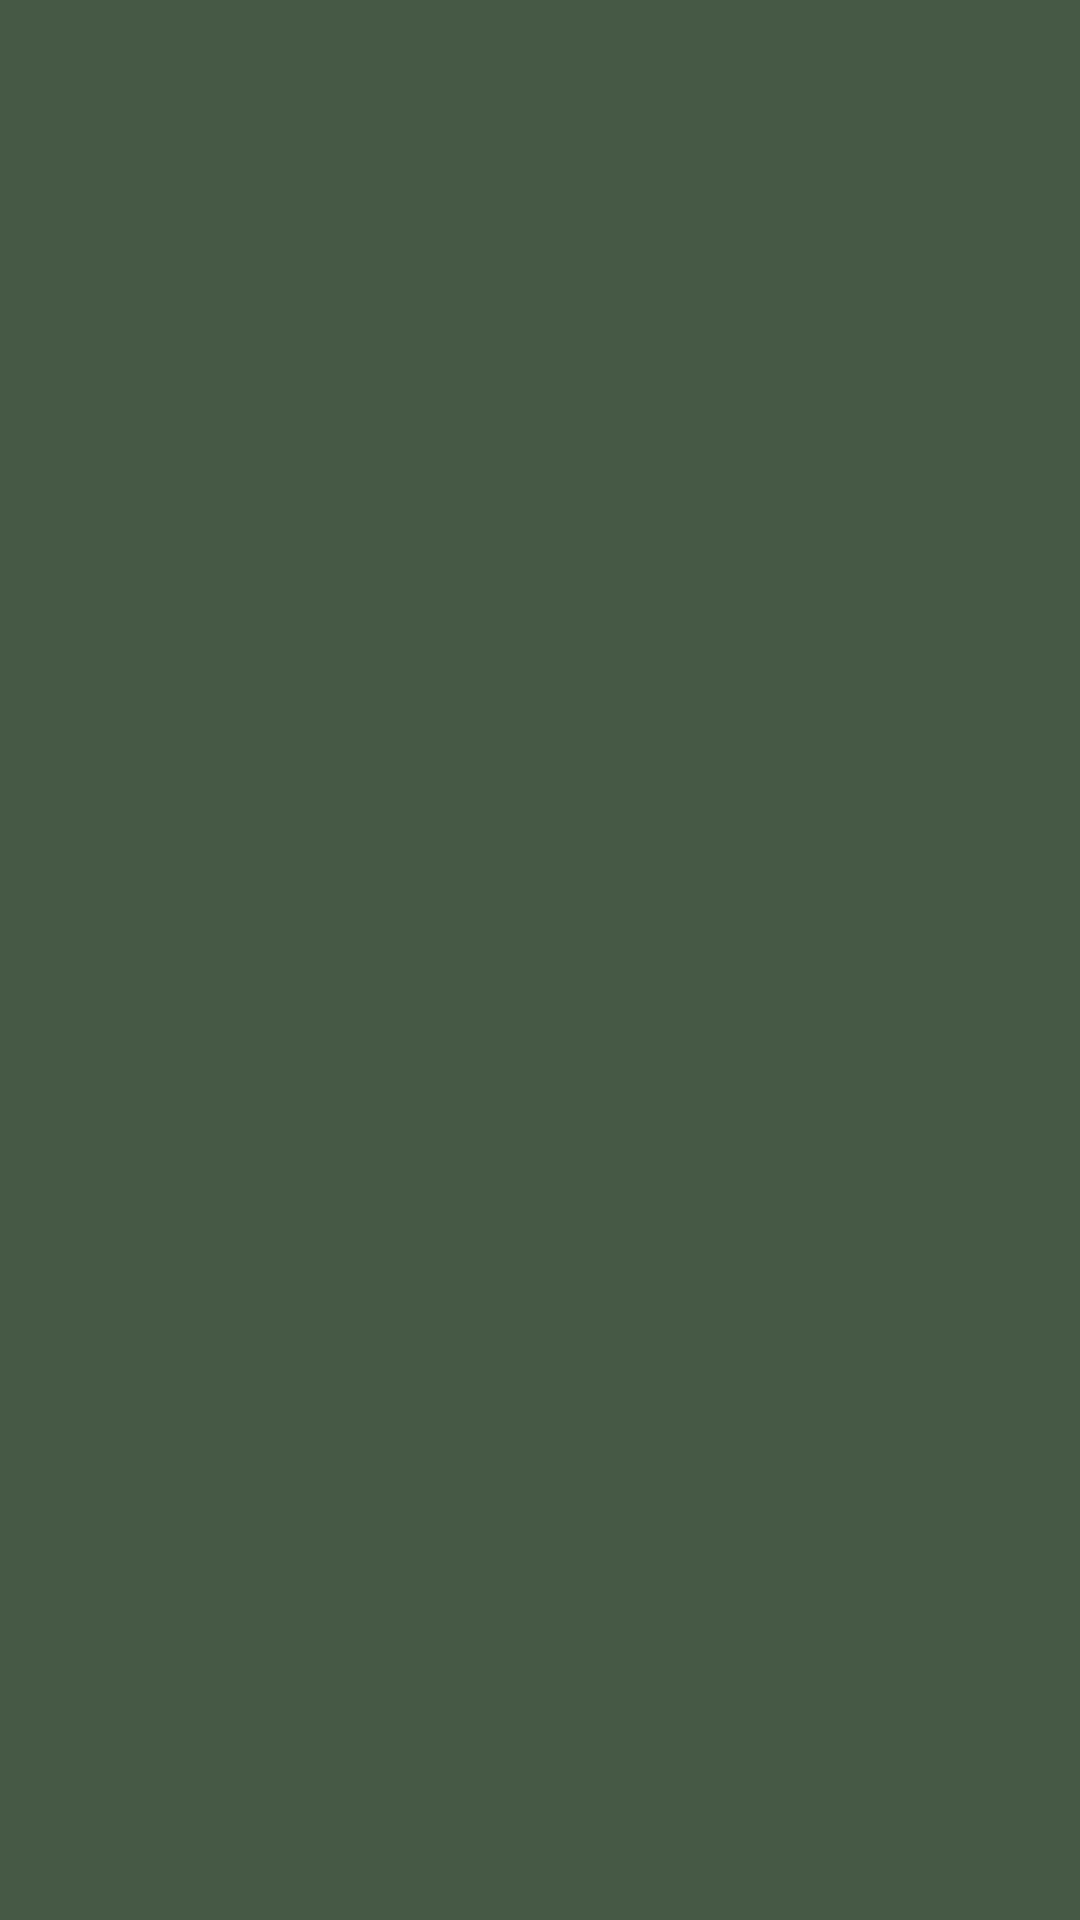 1080x1920 Gray-asparagus Solid Color Background